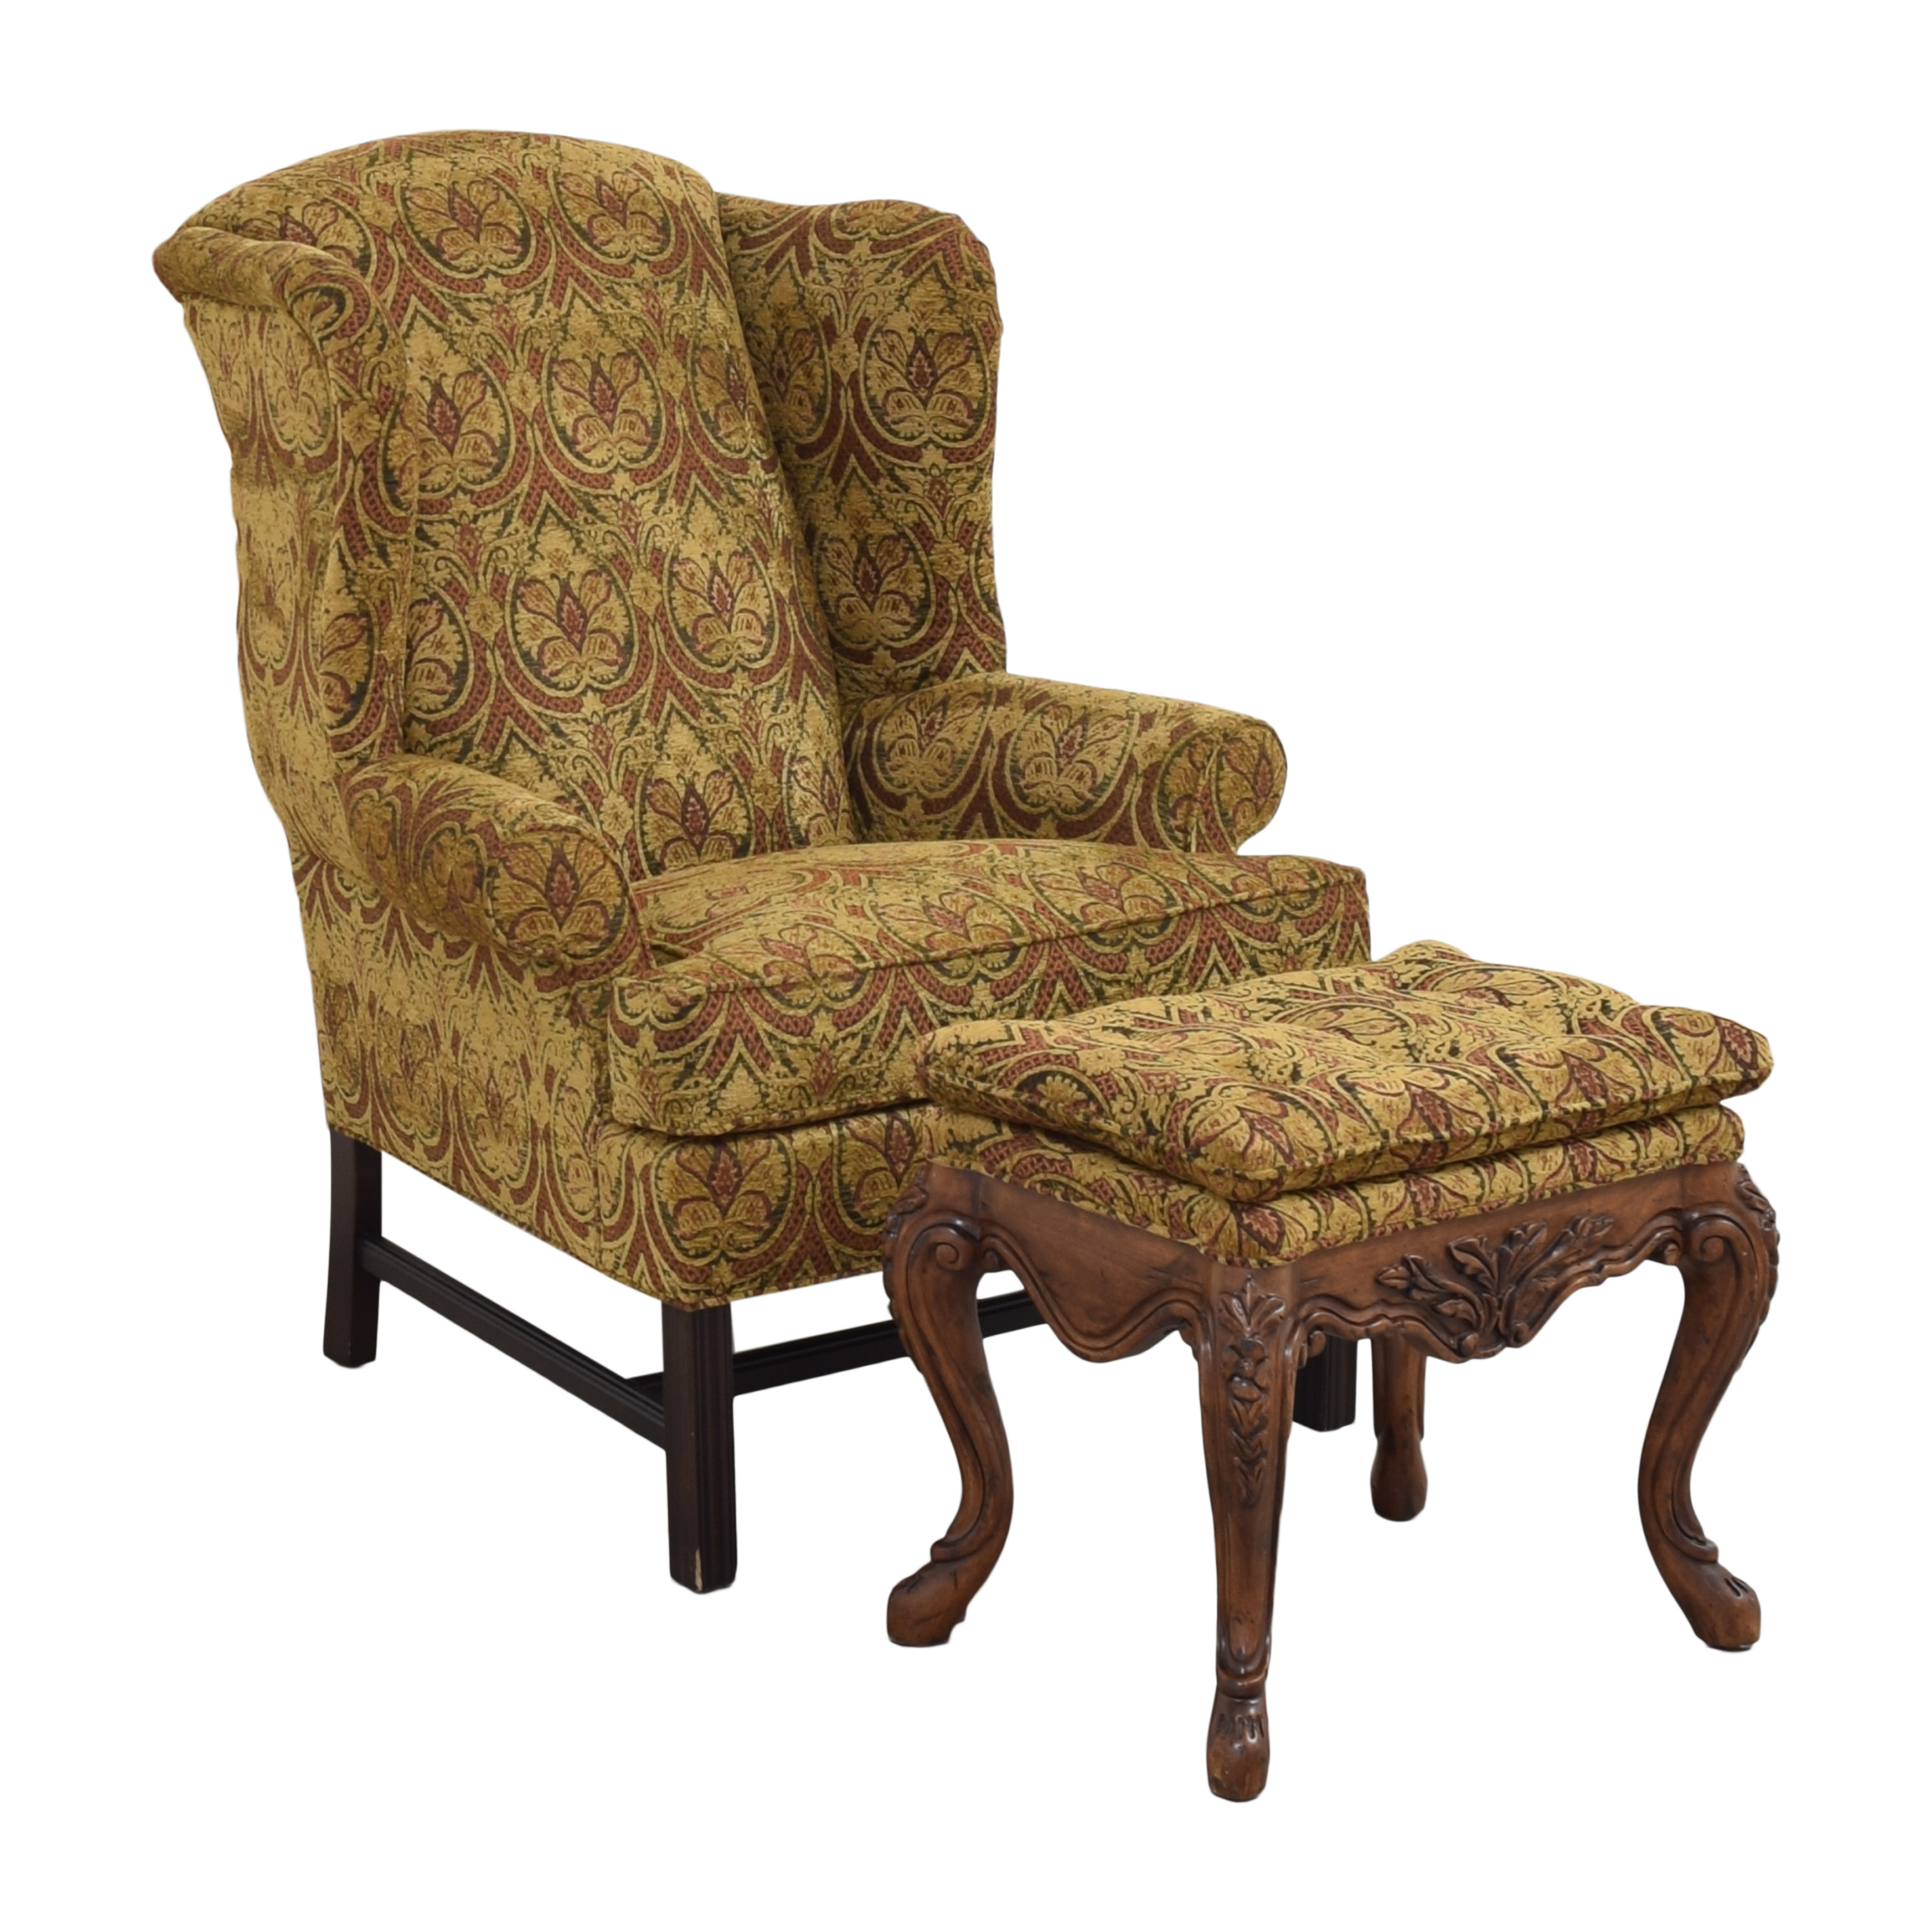 Kravet Kravet Wing Chair with Ottoman coupon